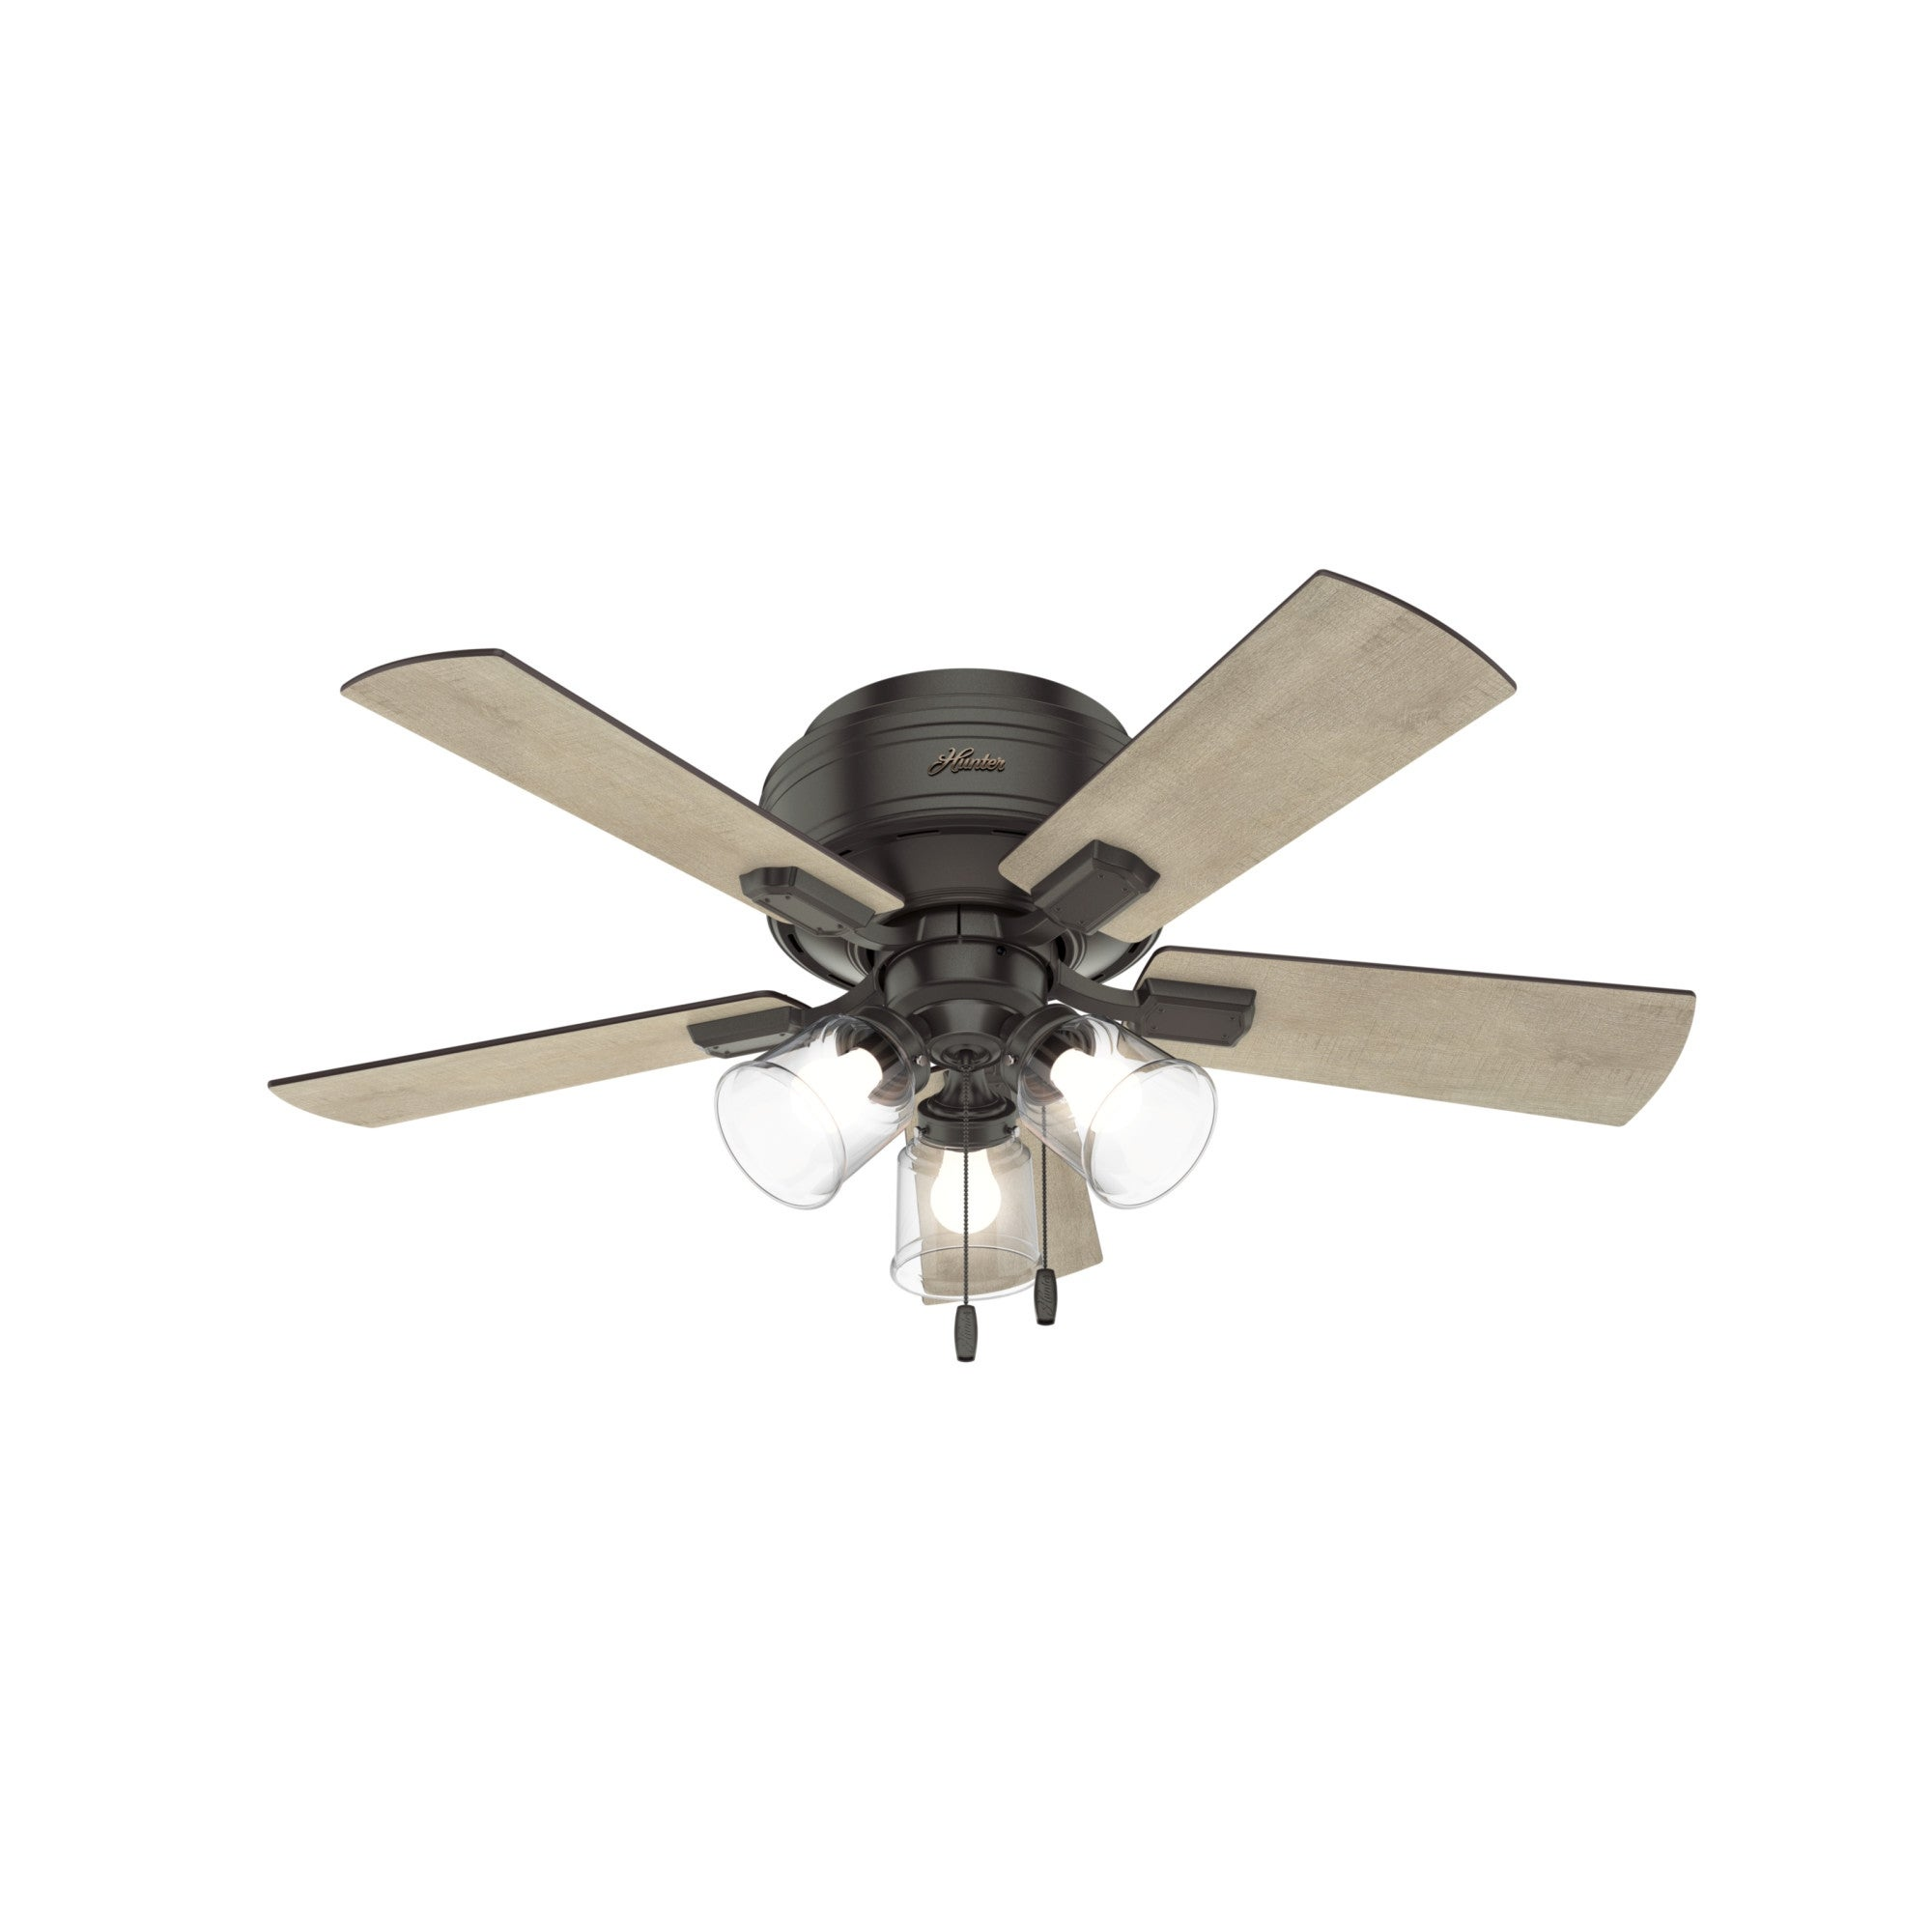 Shop Black Friday Deals On Hunter 42 Crestfield Low Profile Ceiling Fan With Led Light Kit And Pull Chain Overstock 22676100